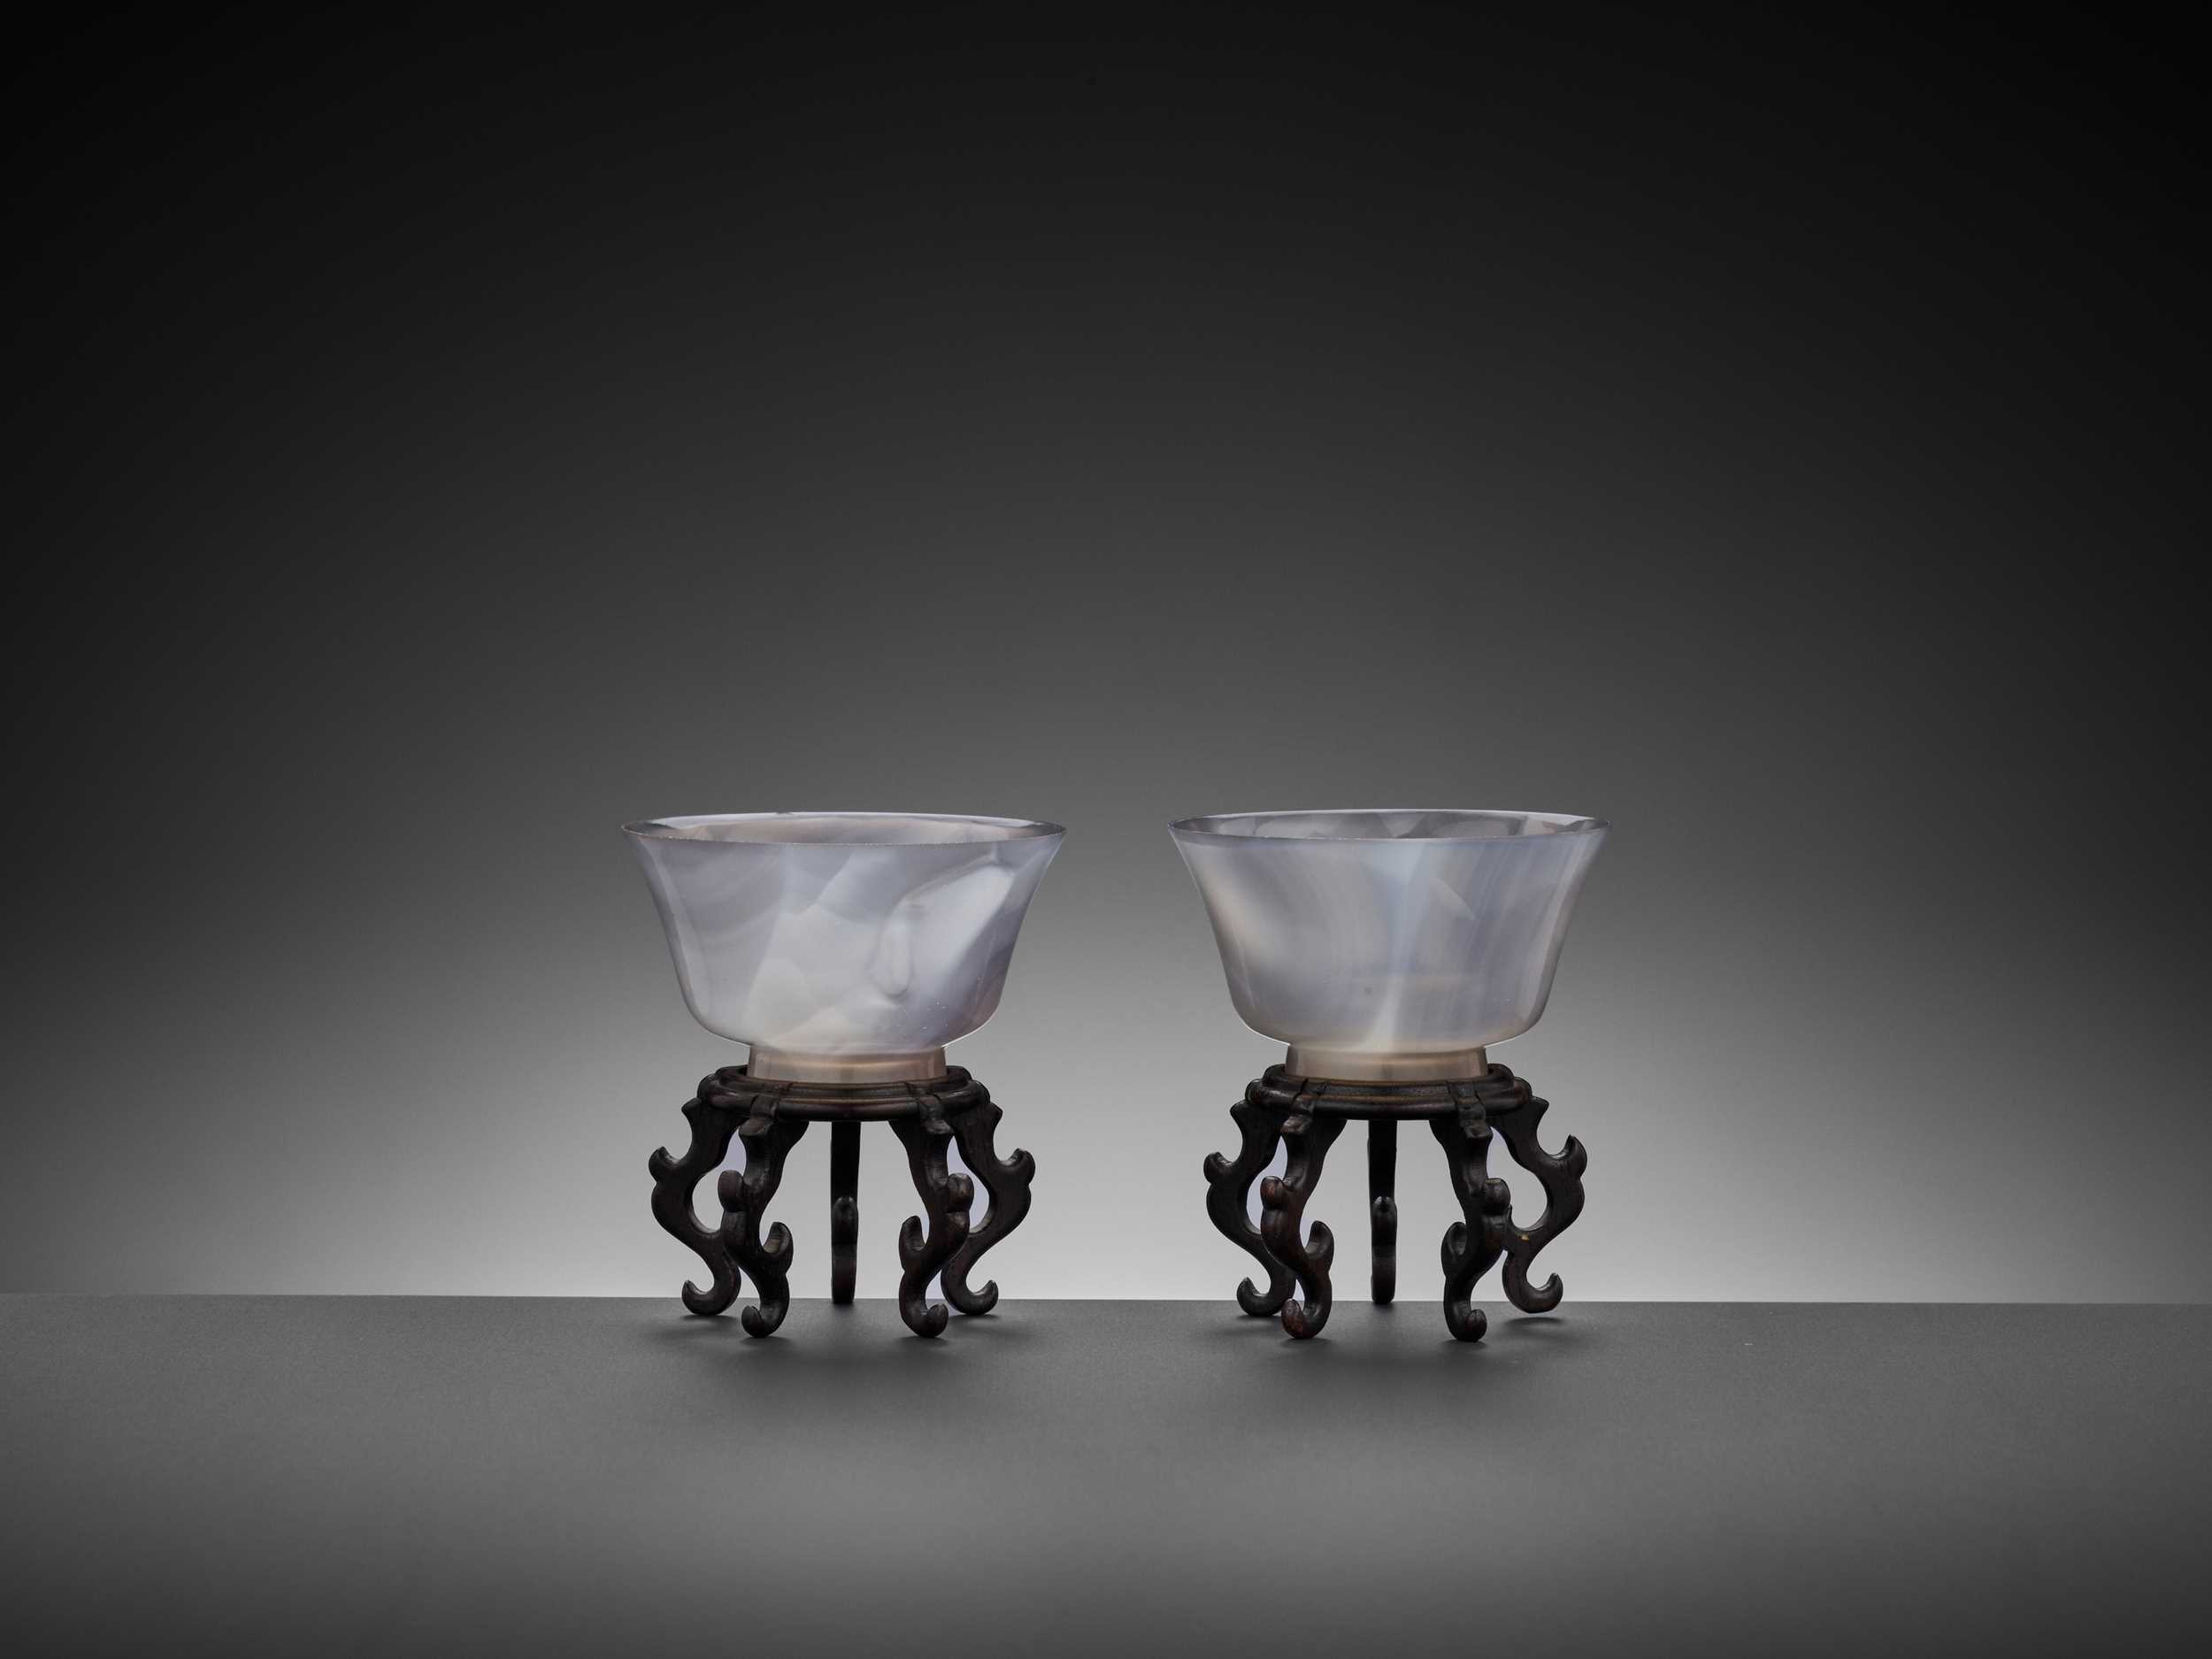 Lot 36 - A PAIR OF AGATE CUPS, QING DYNASTY